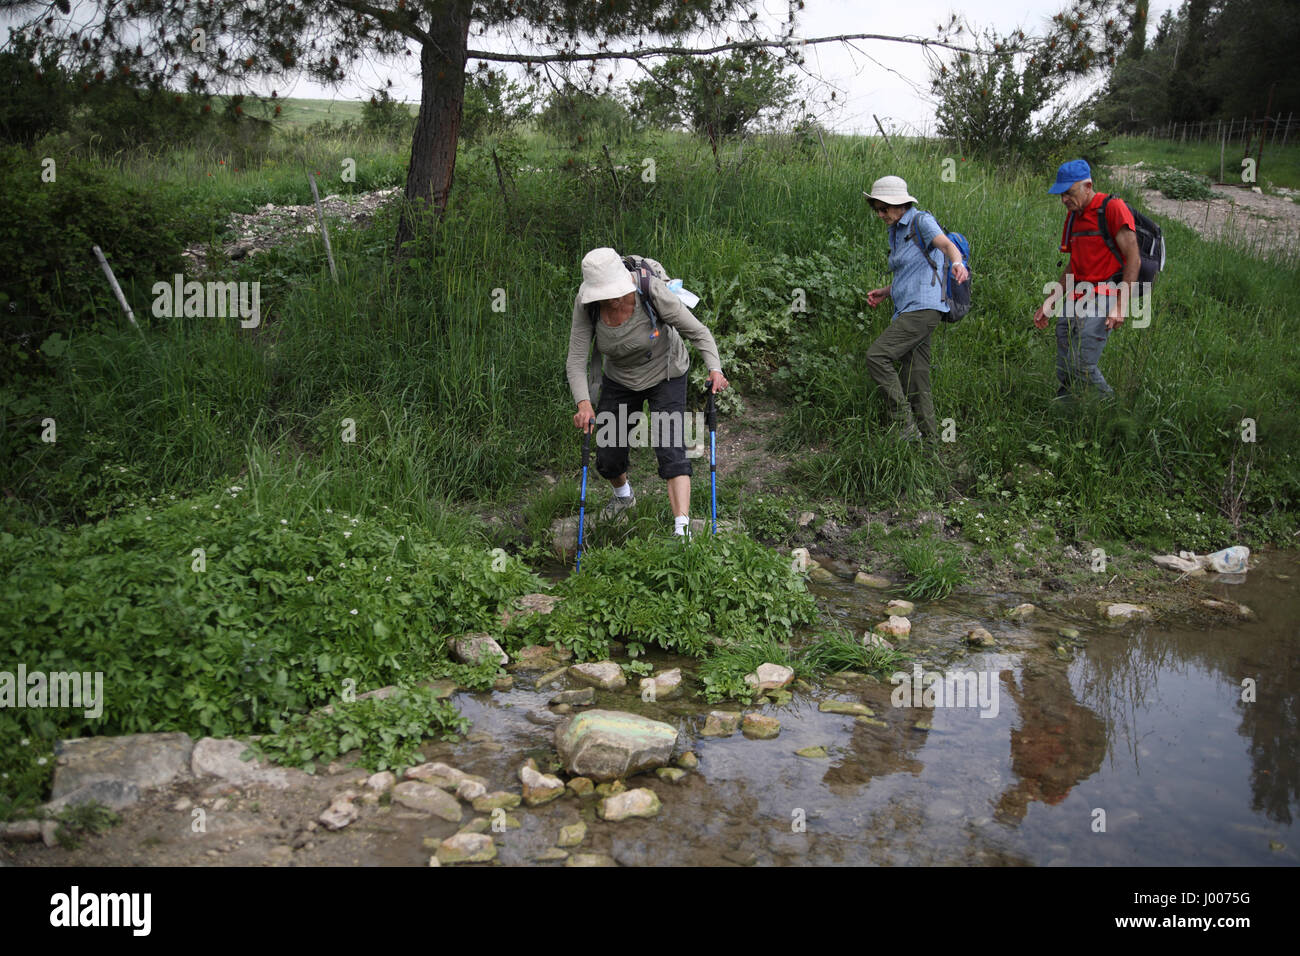 A 69 year old woman hiker walk on pebbles to cross a stream using her hiking sticks for support, her two friends, - Stock Image